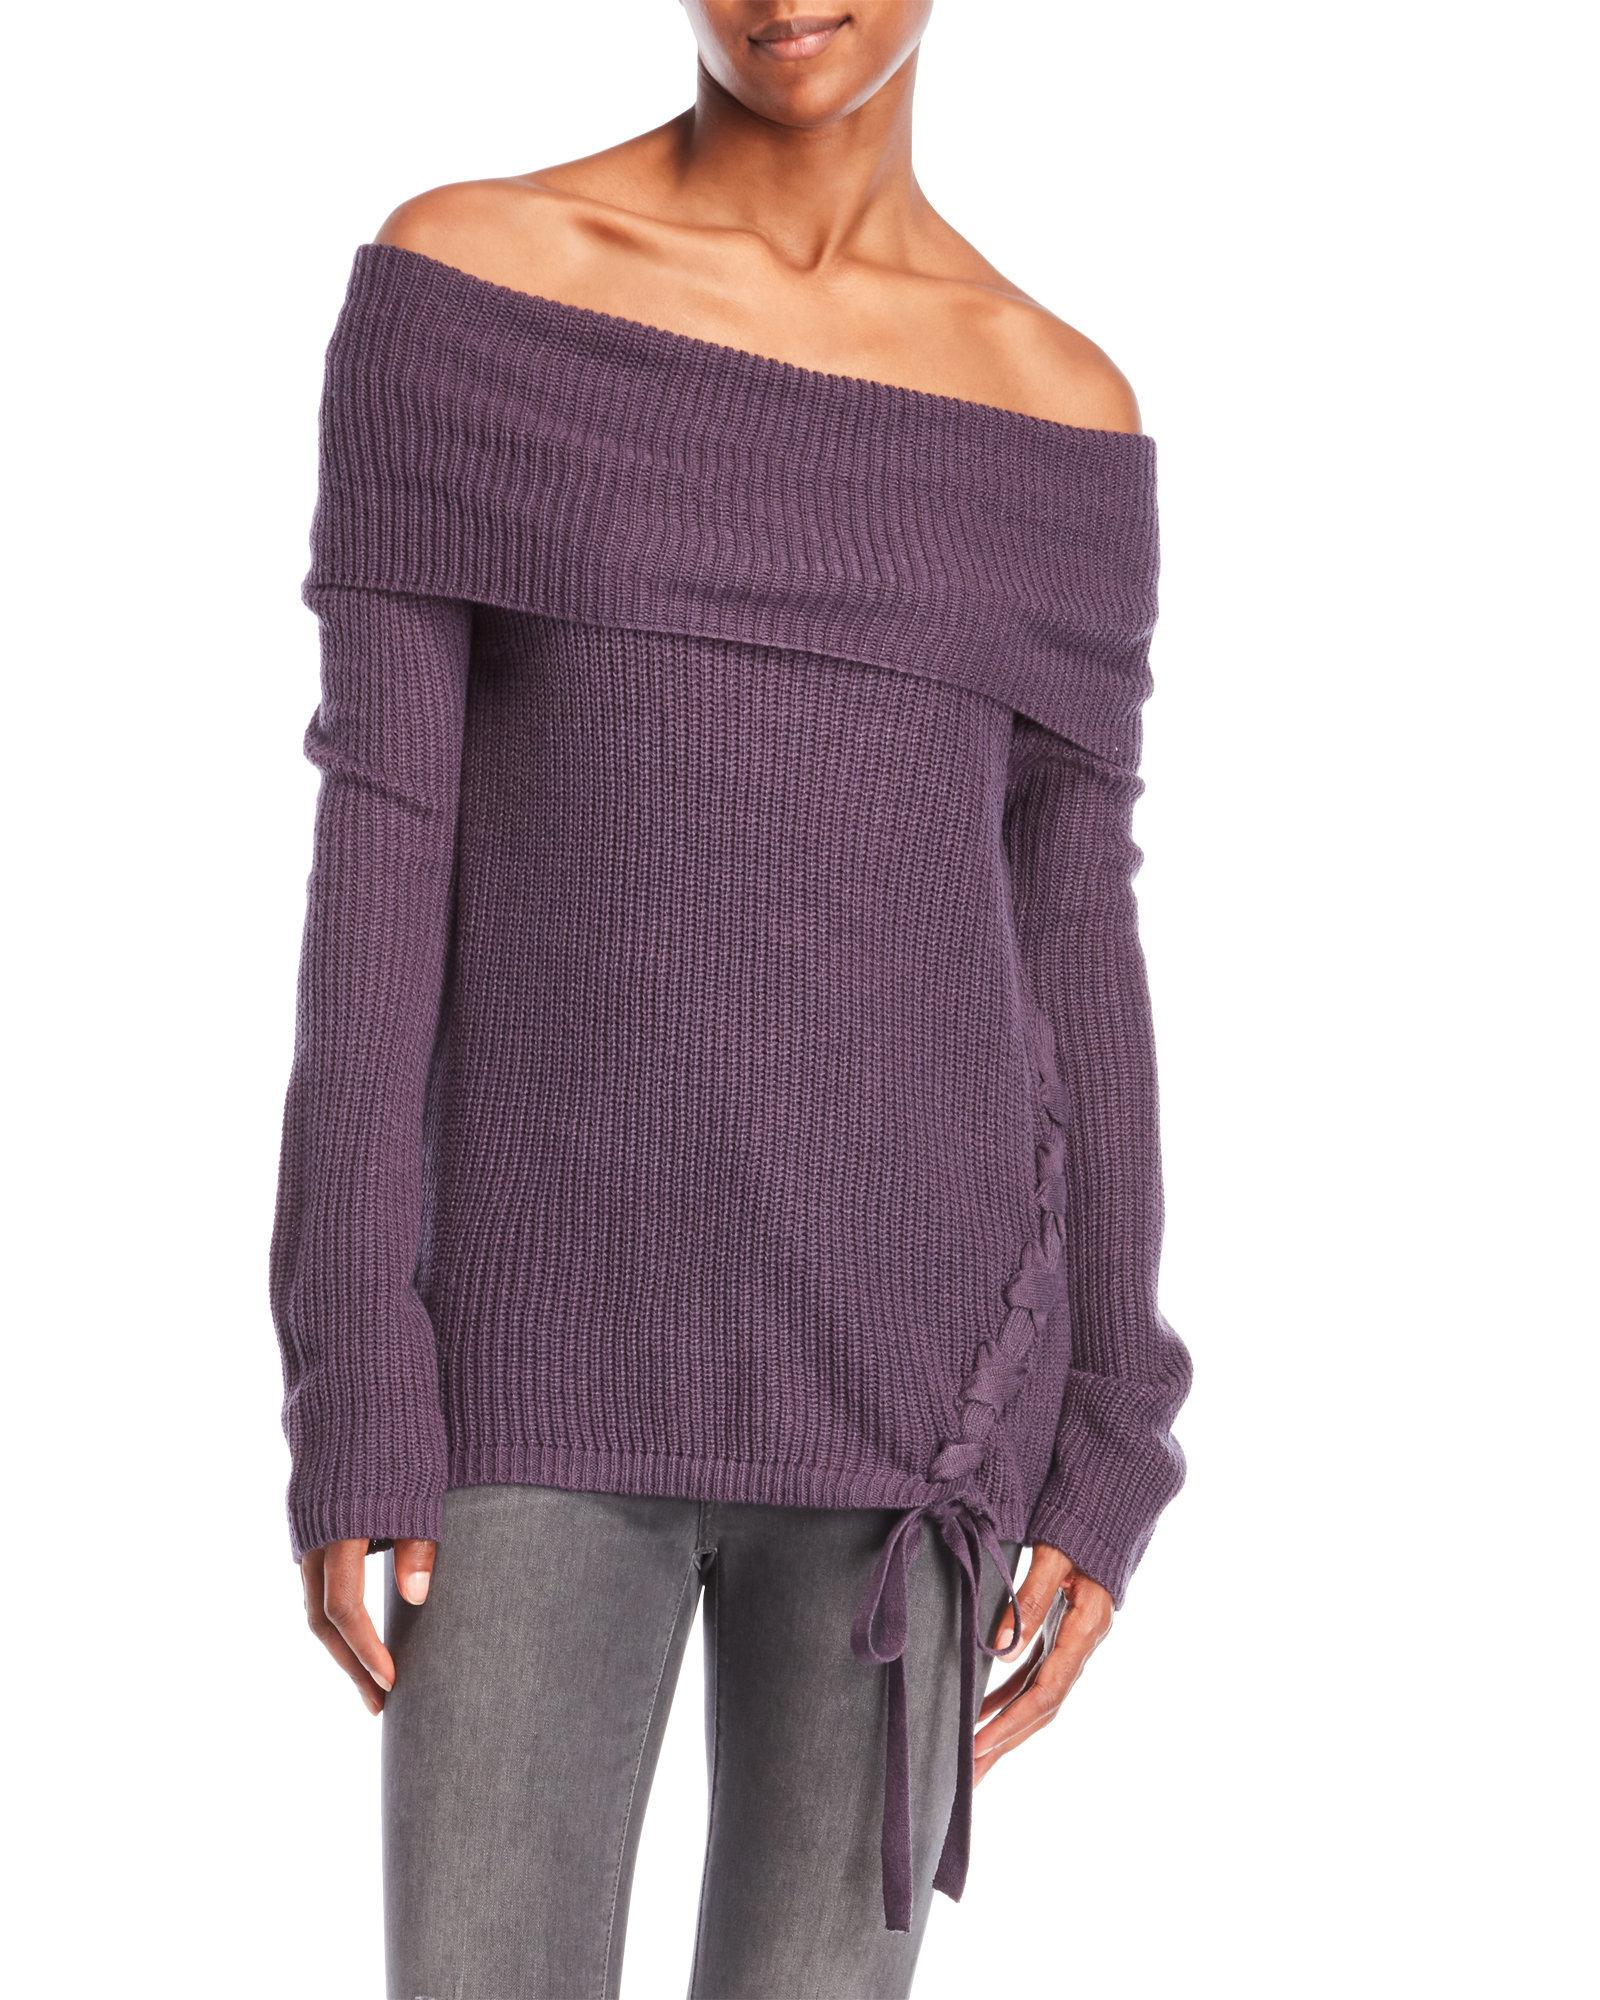 Fever Off-The-Shoulder Lace-Up Sweater in Purple | Lyst